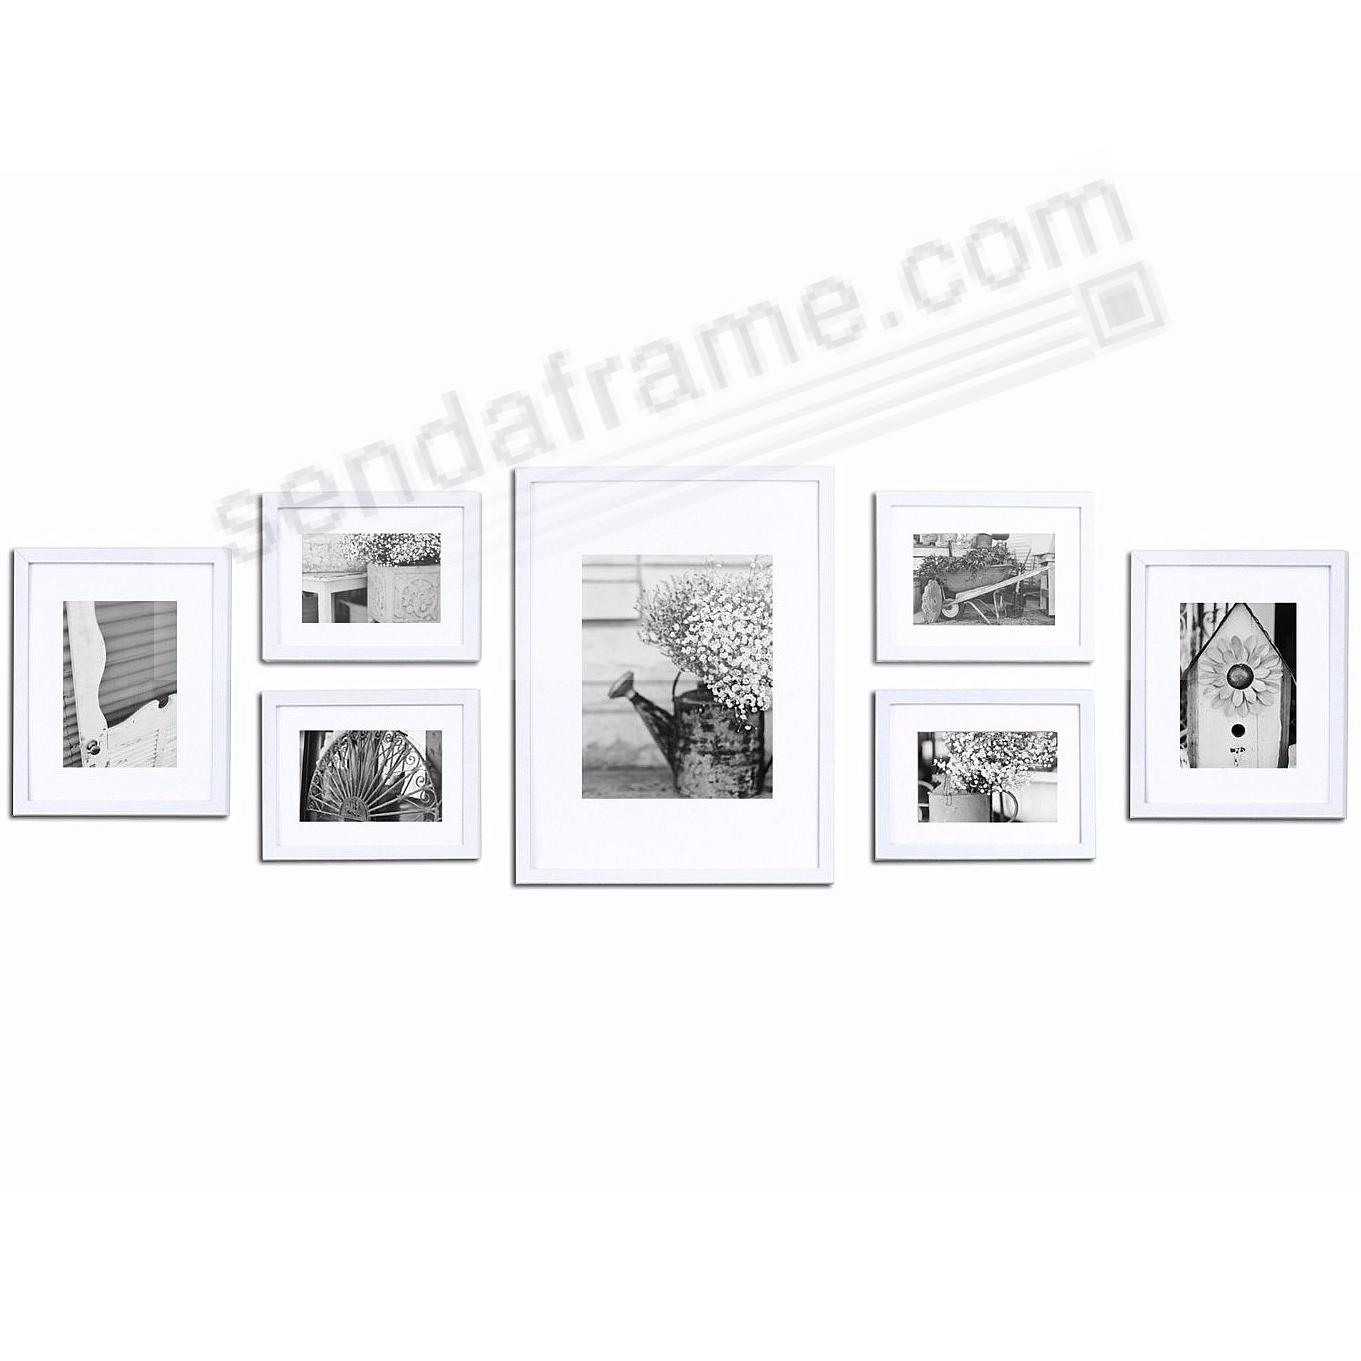 Picture frames photo albums personalized and engraved digital 7piece white wood wall frame kit by gallery solutionstrade jeuxipadfo Choice Image